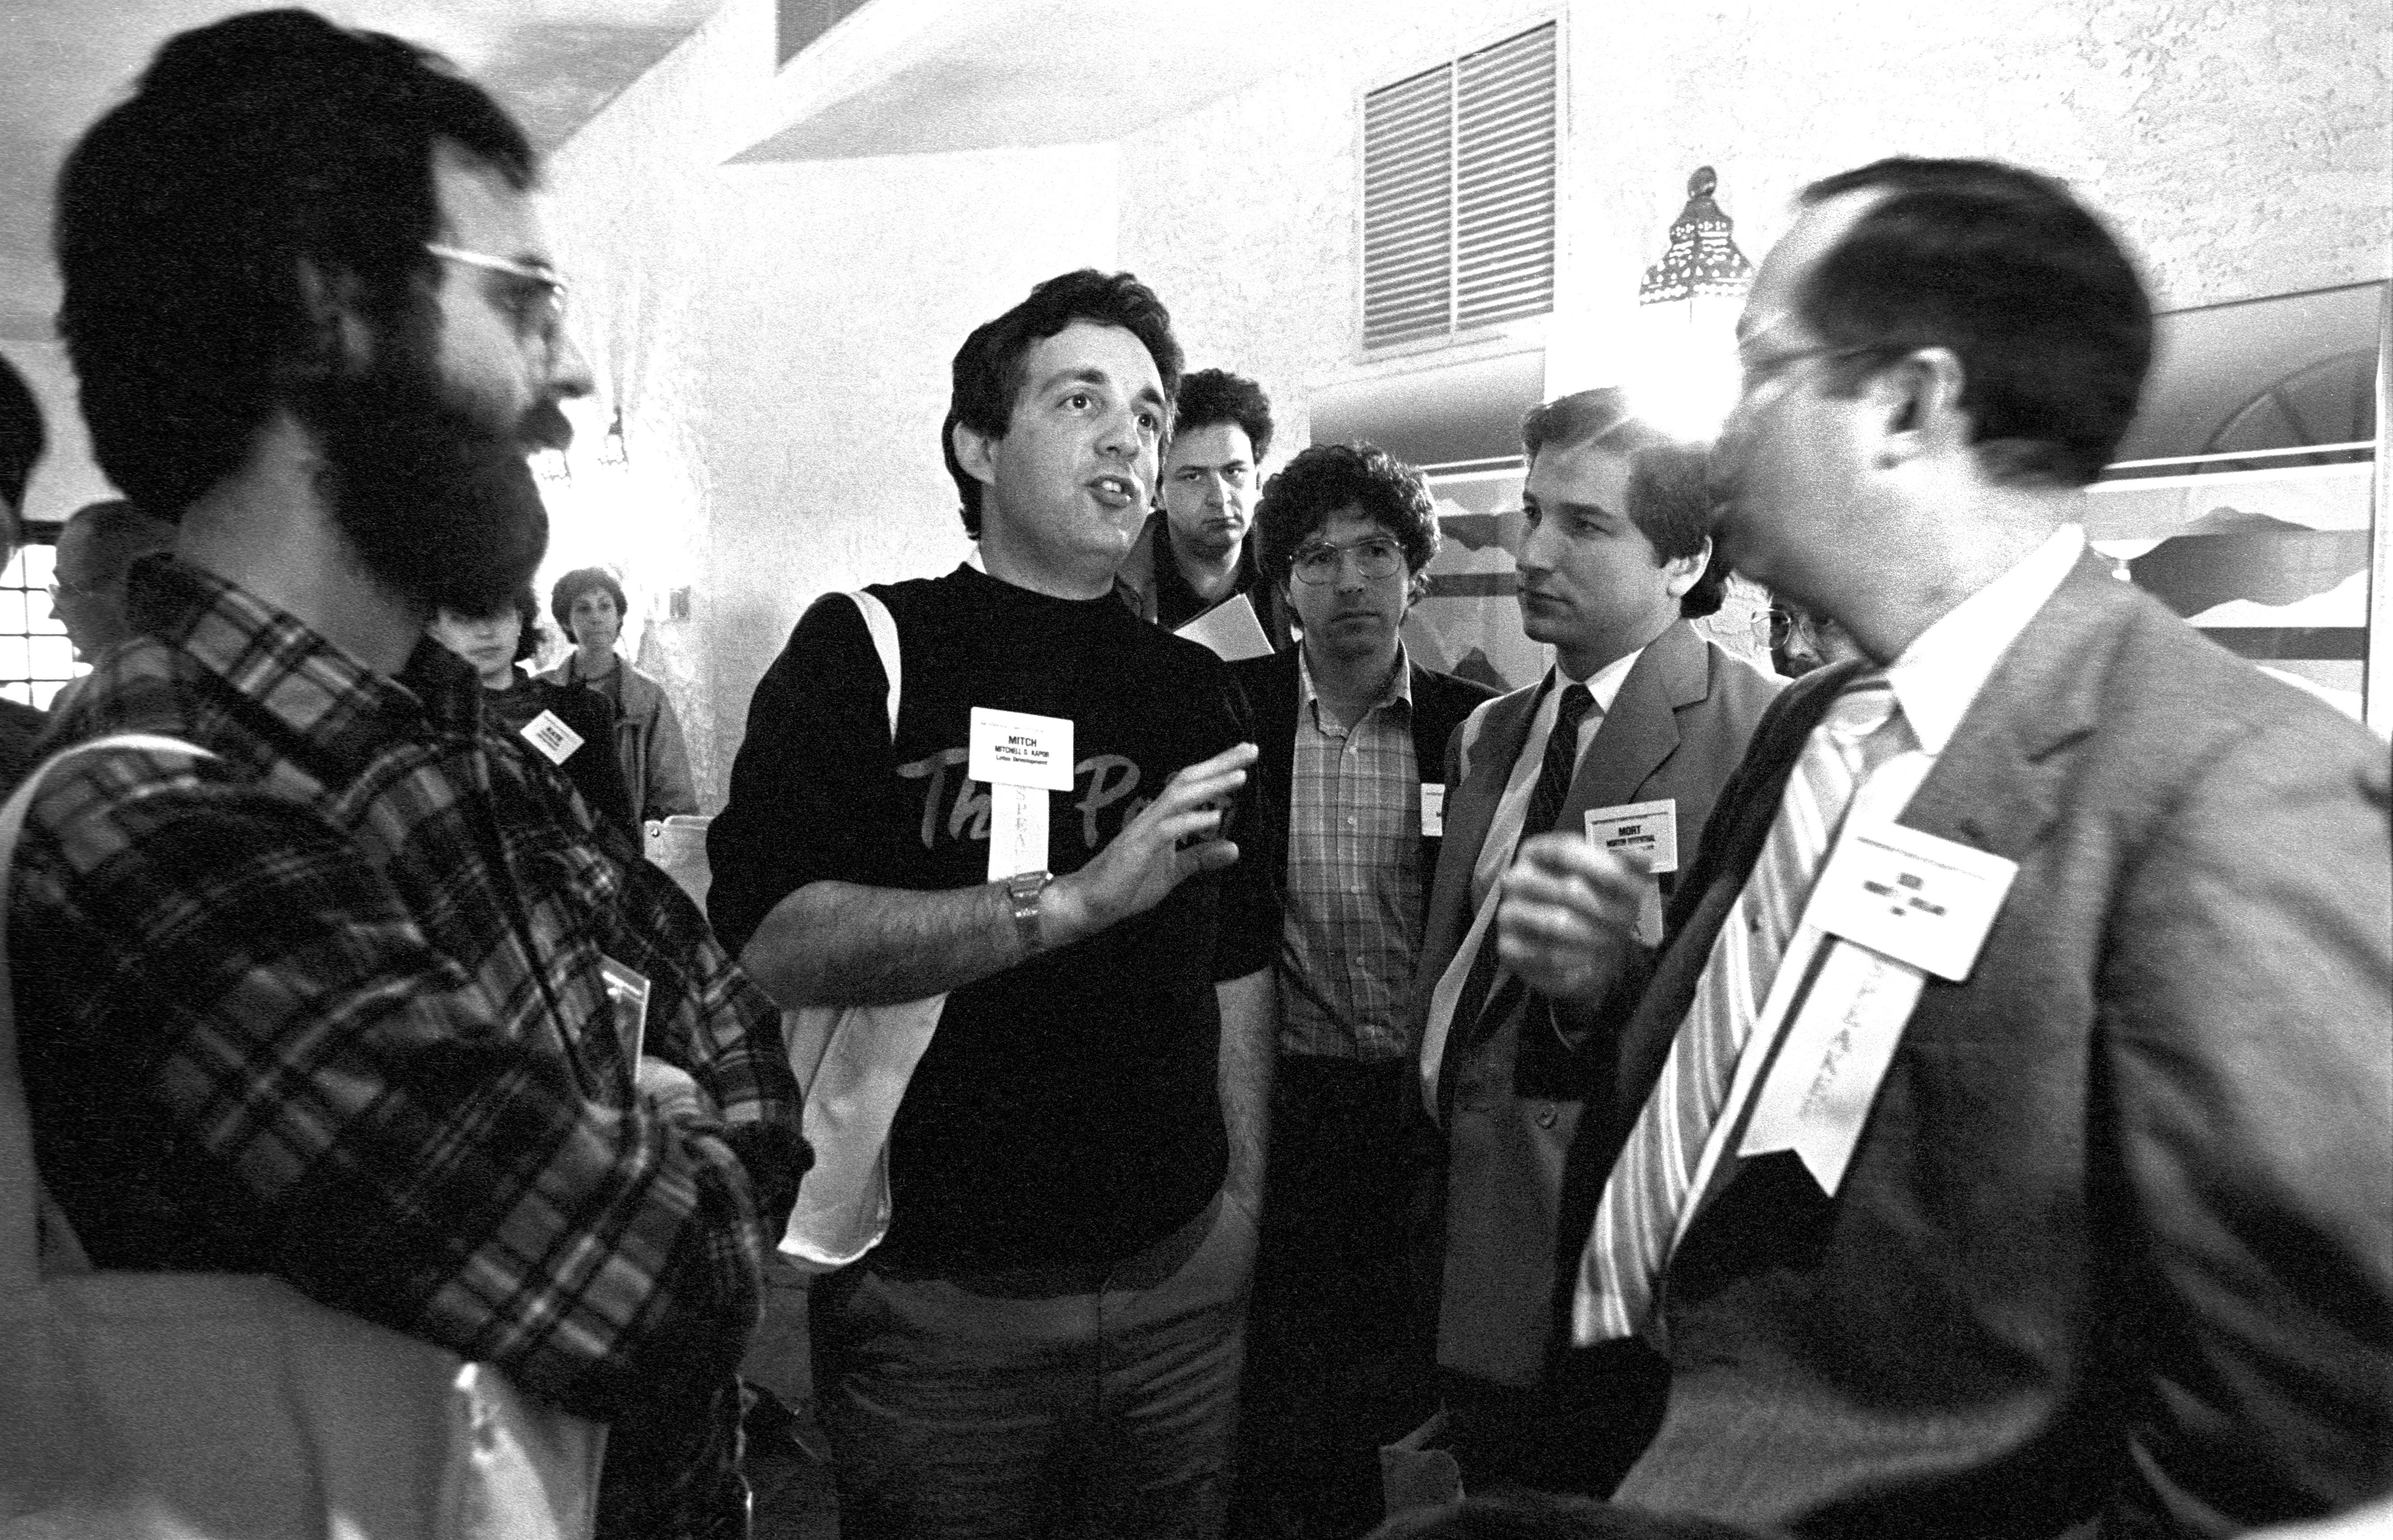 At The 1985 PC Forum